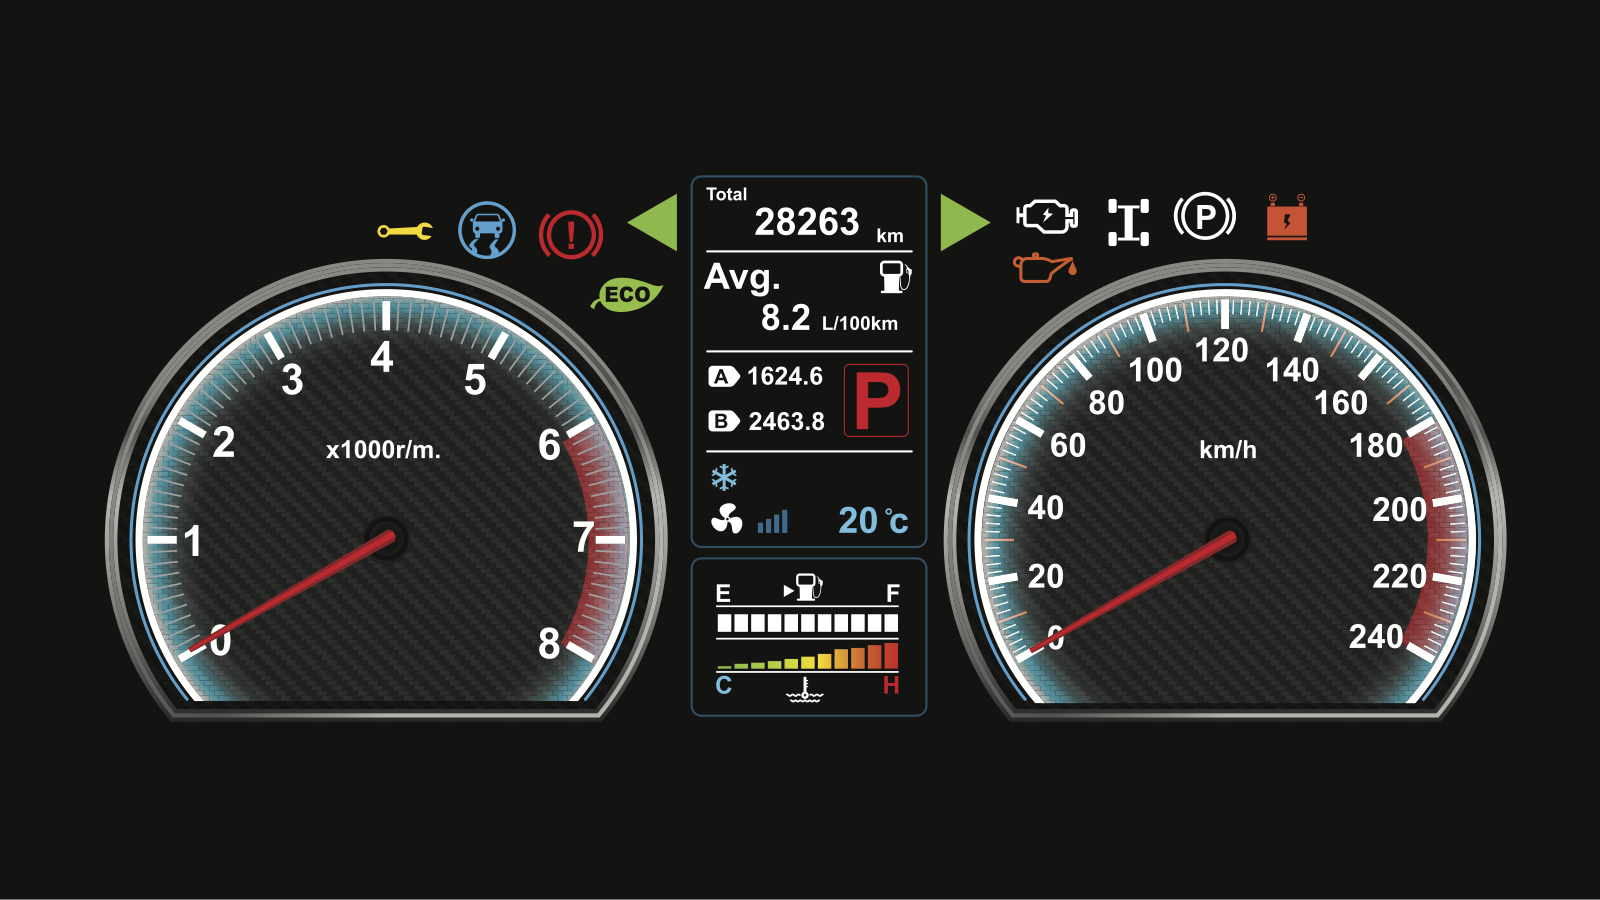 Depiction of a car dashboard with active warning lights